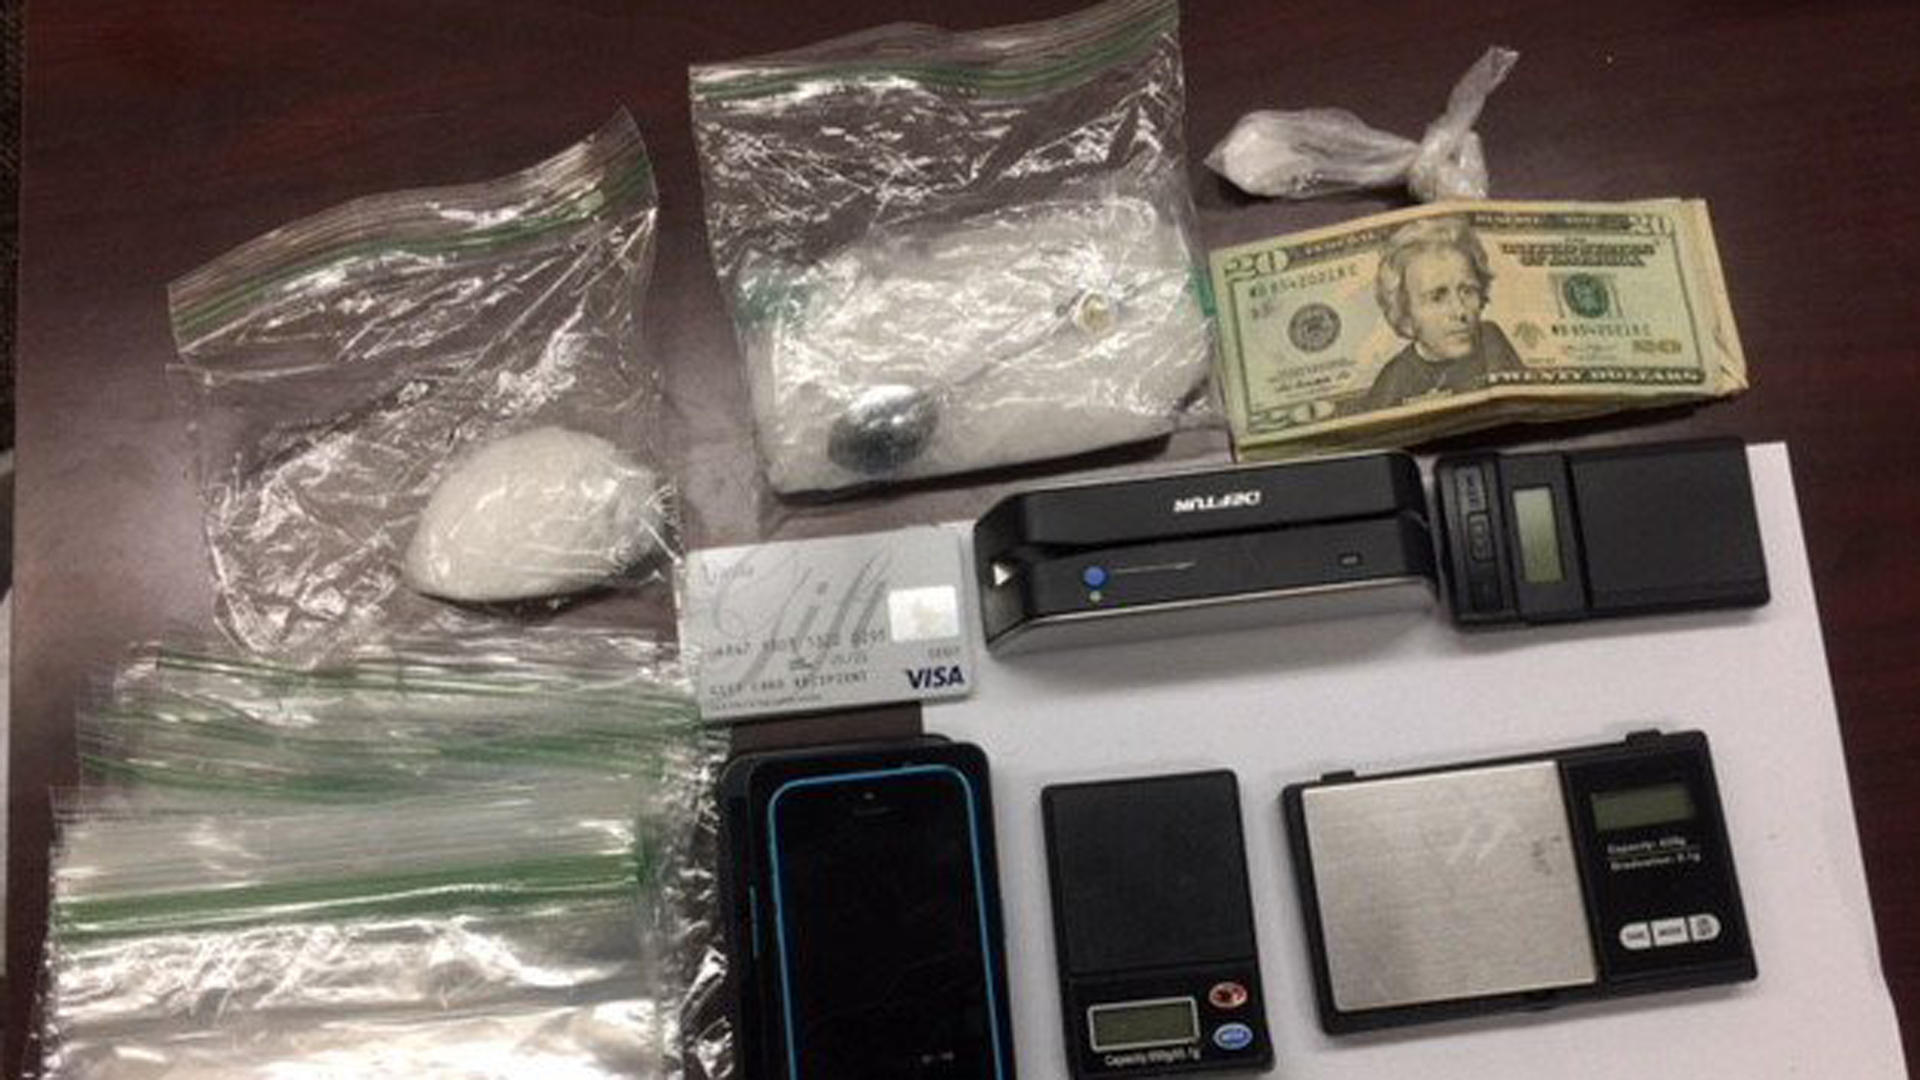 Deputies seized approximately half a pounds of methamphetamine, cash and ID theft equipment during a traffic stop in Norwalk on Aug. 15, 2018. (Credit: L.A. County Sheriff's Department)